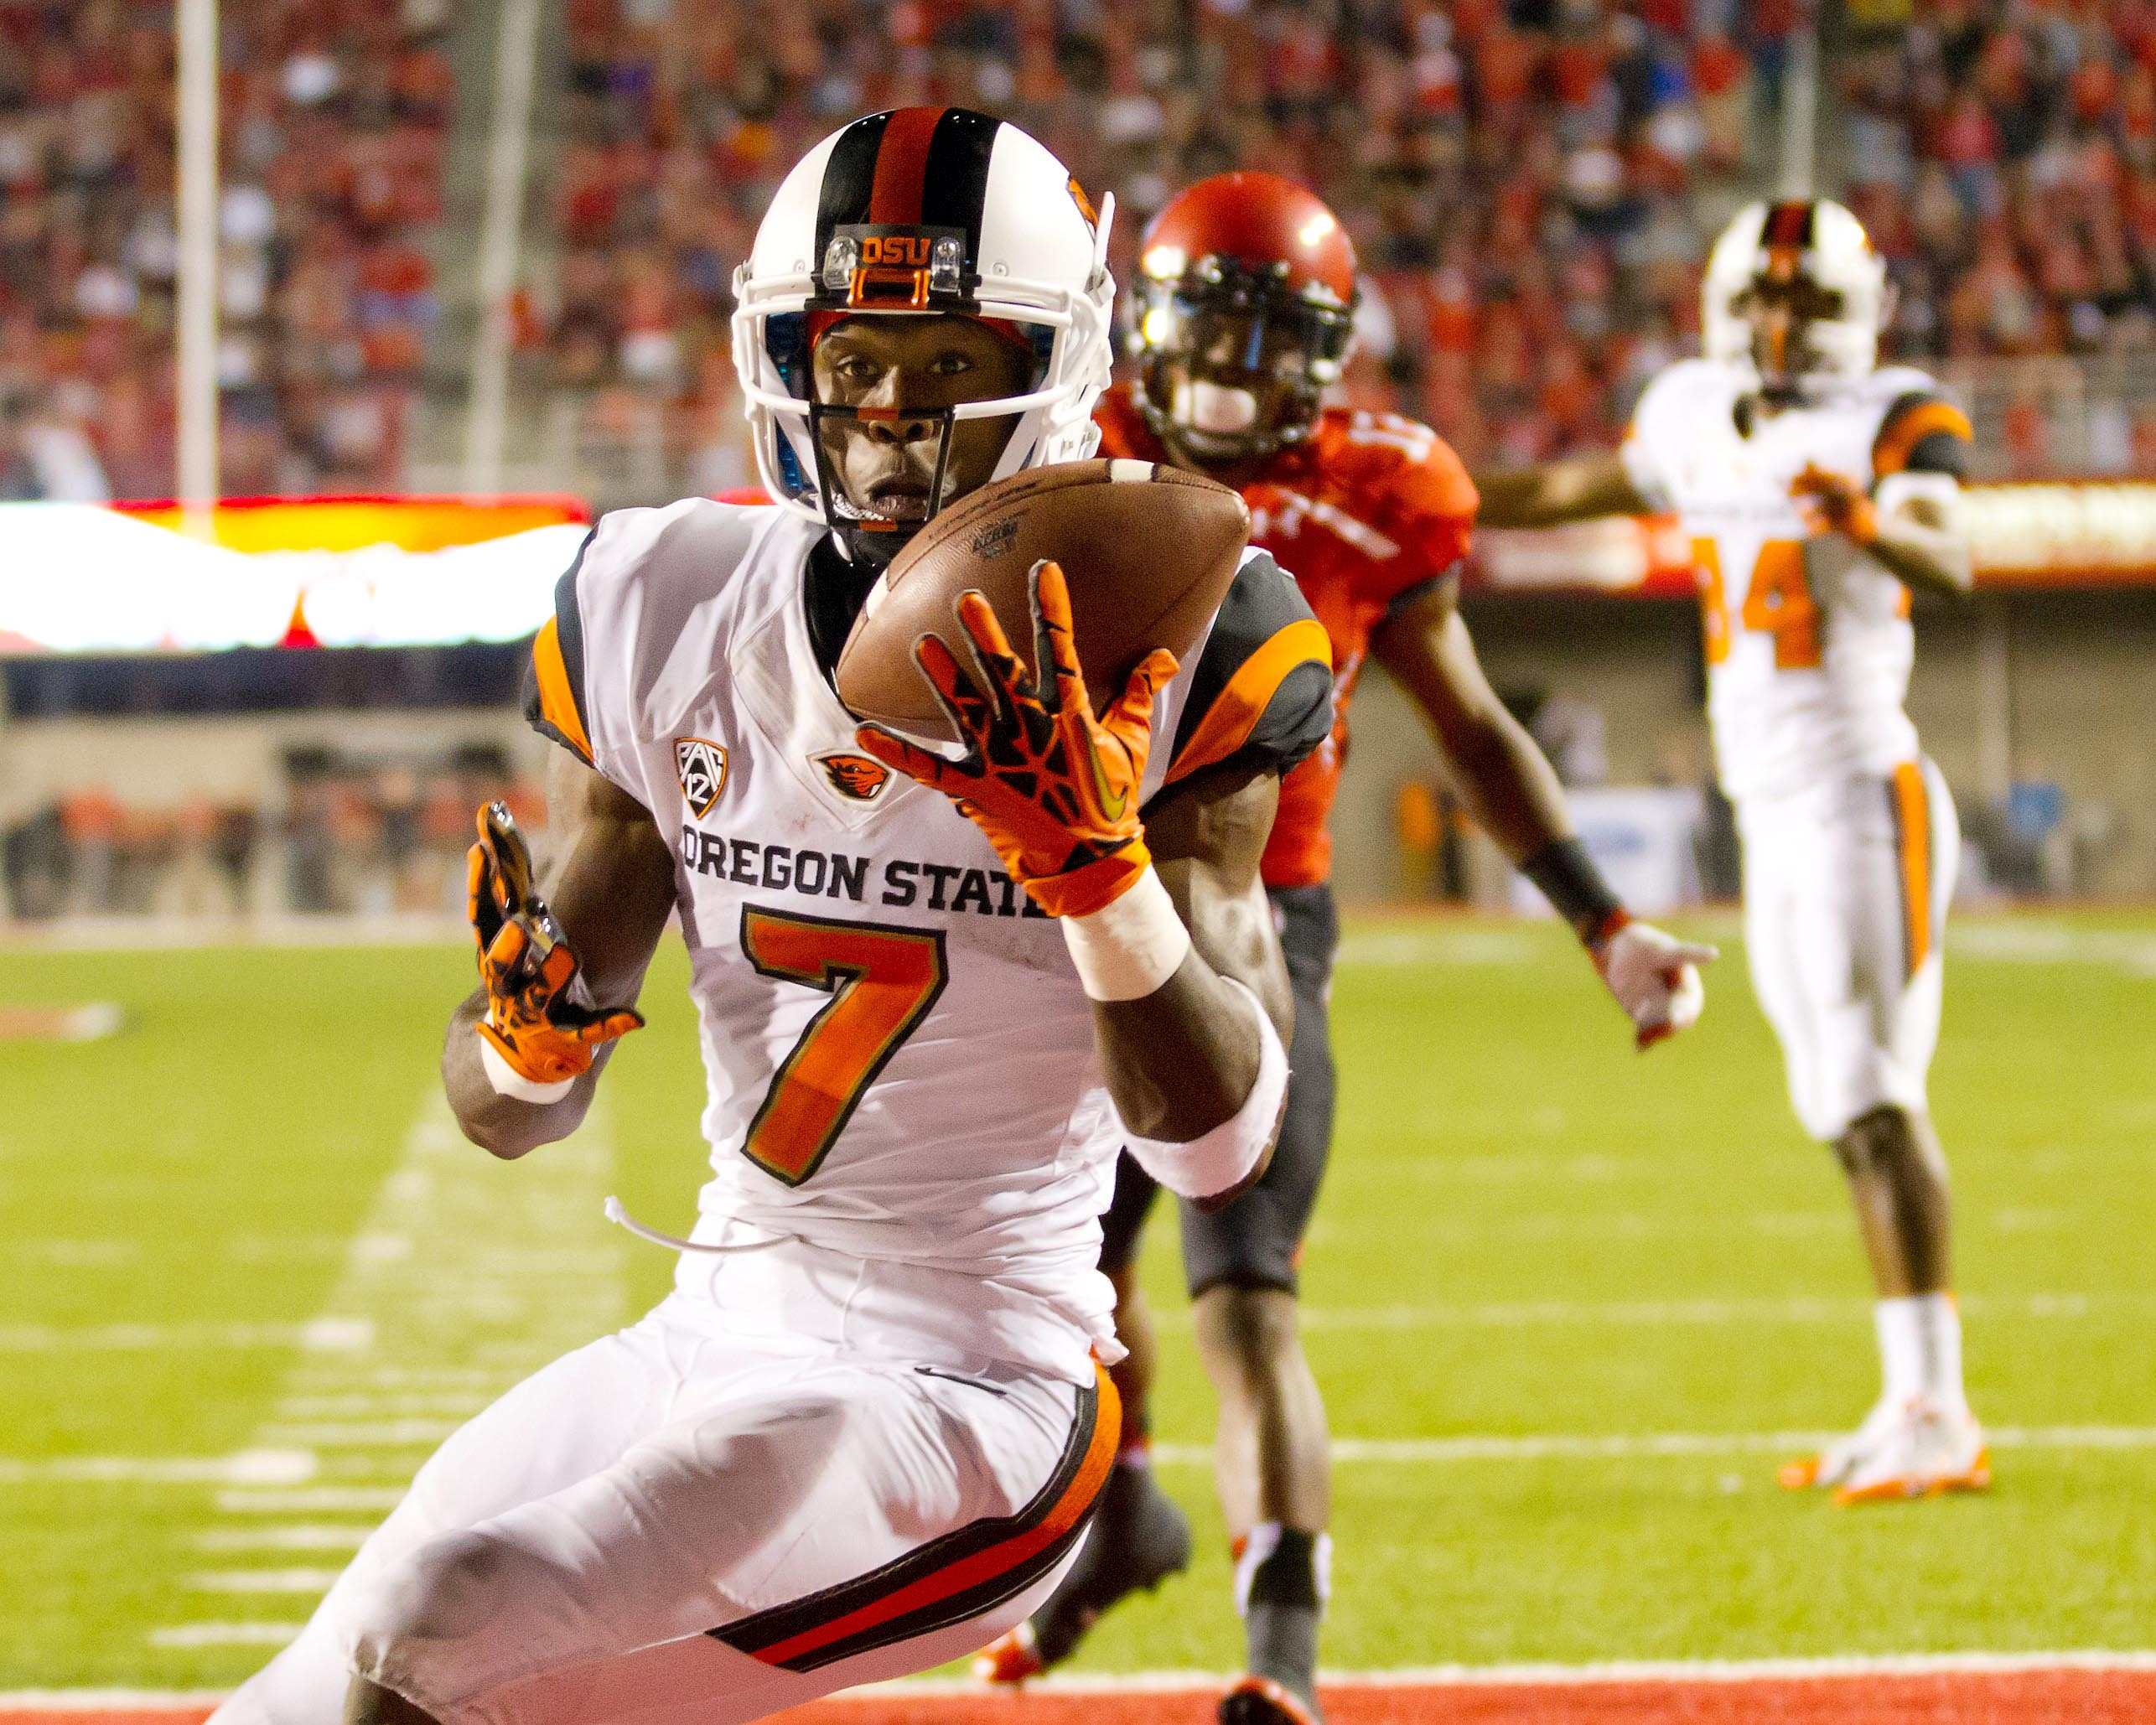 24. Oregon State Beavers